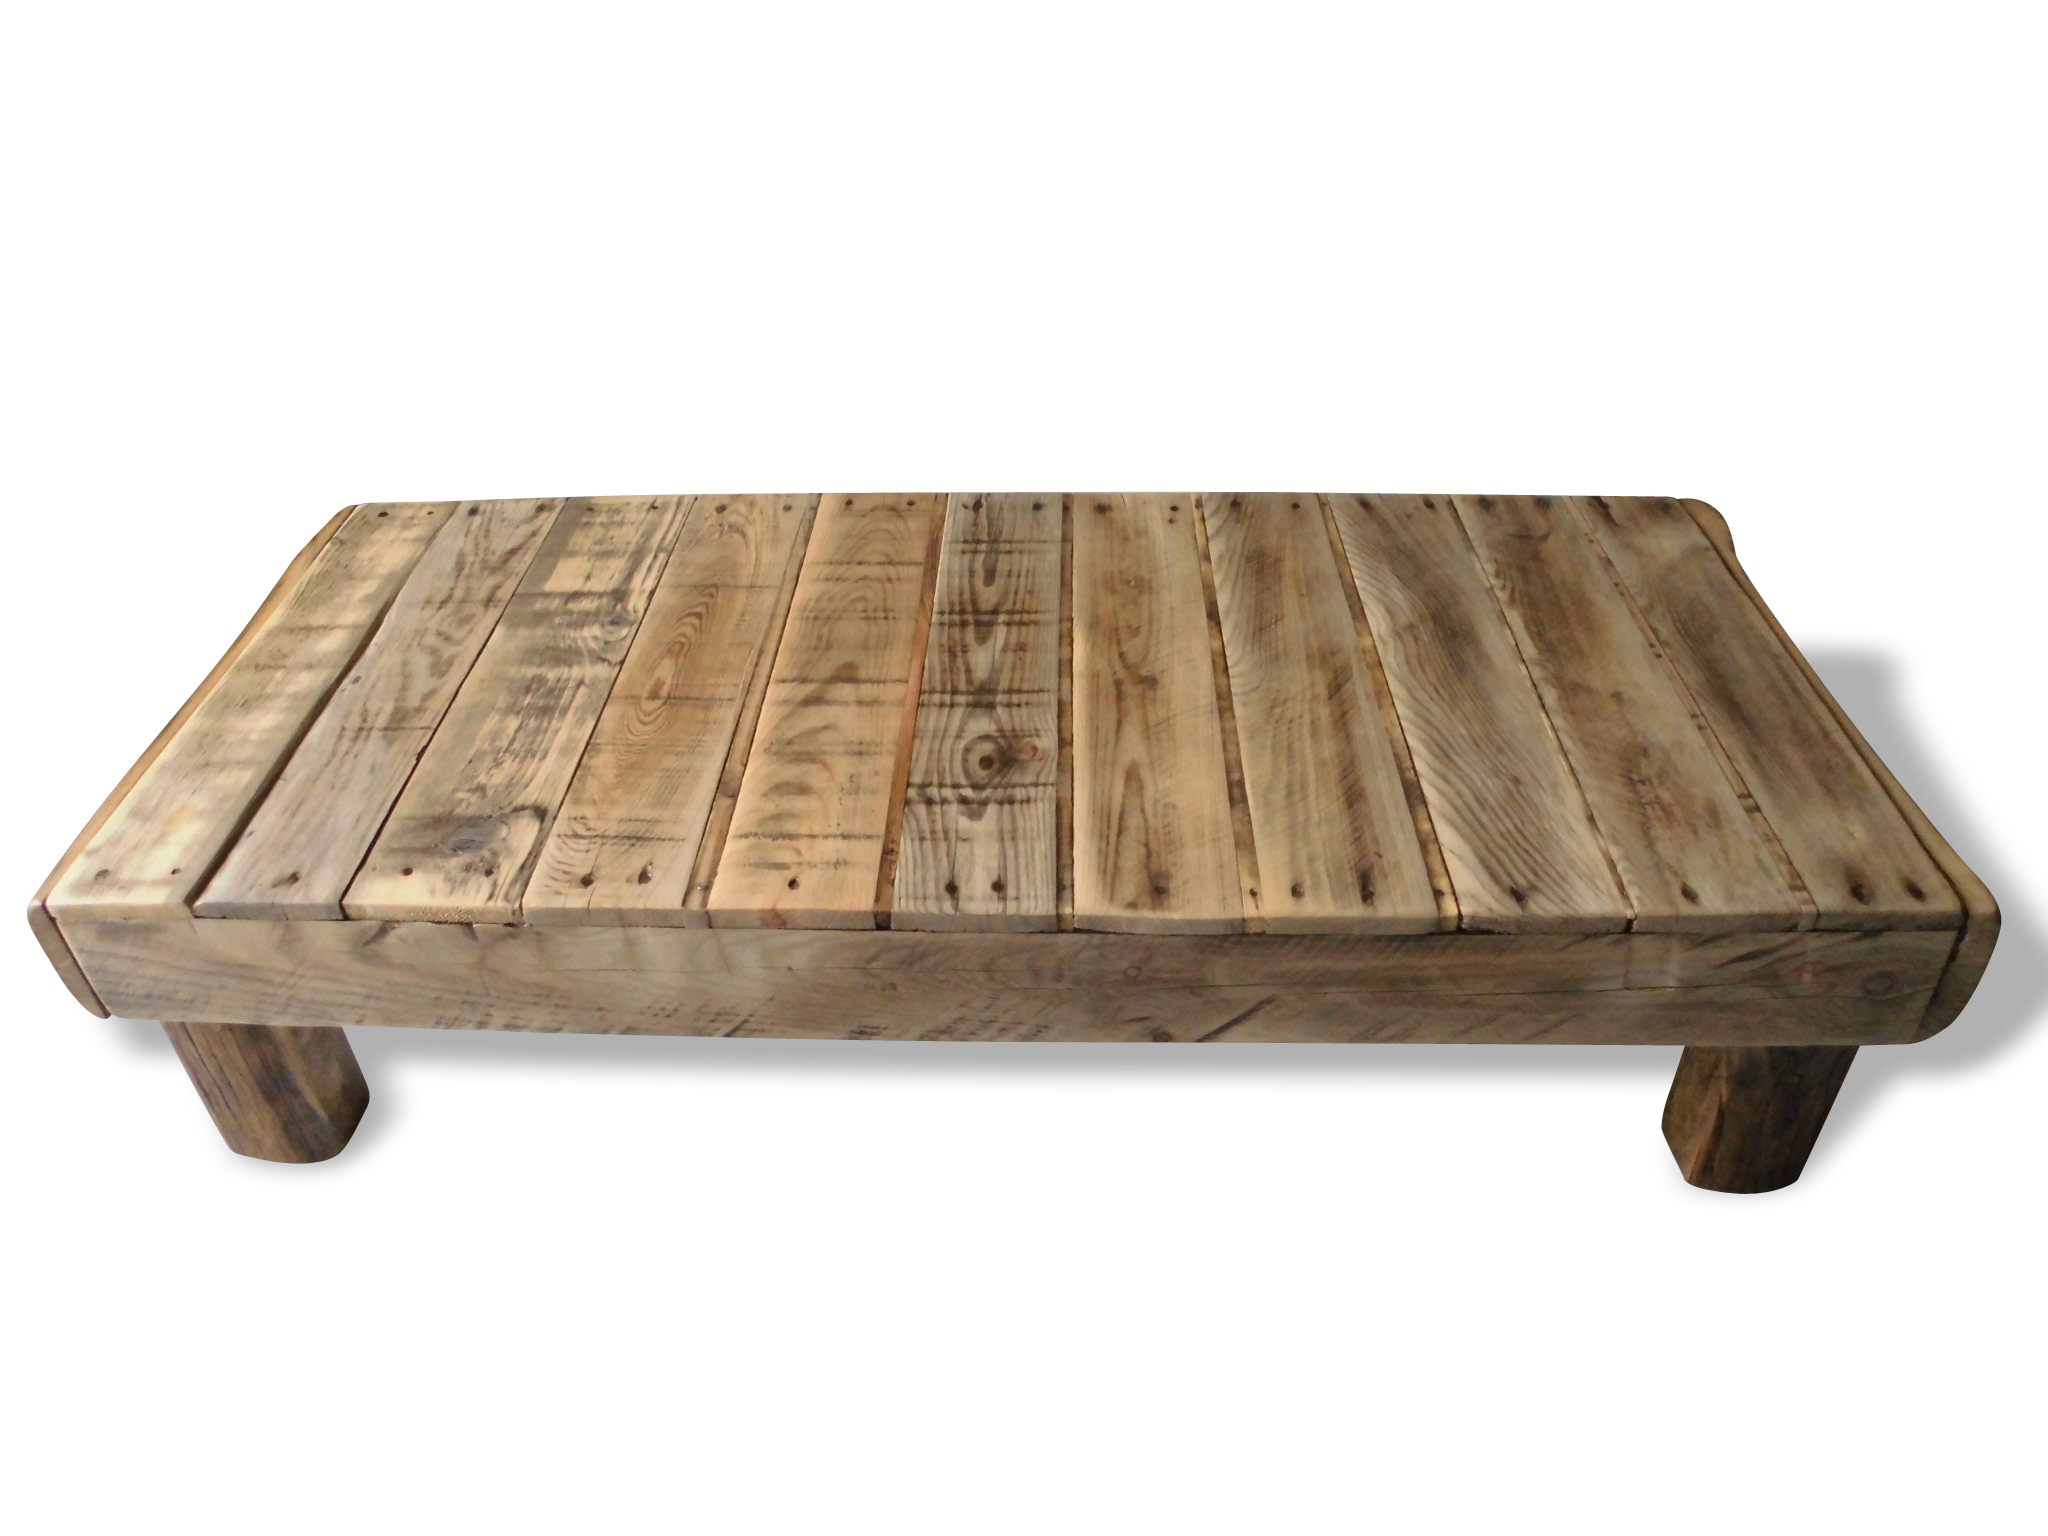 Fabriquer une brouette en bois fashion designs - Table basse fabrication maison ...